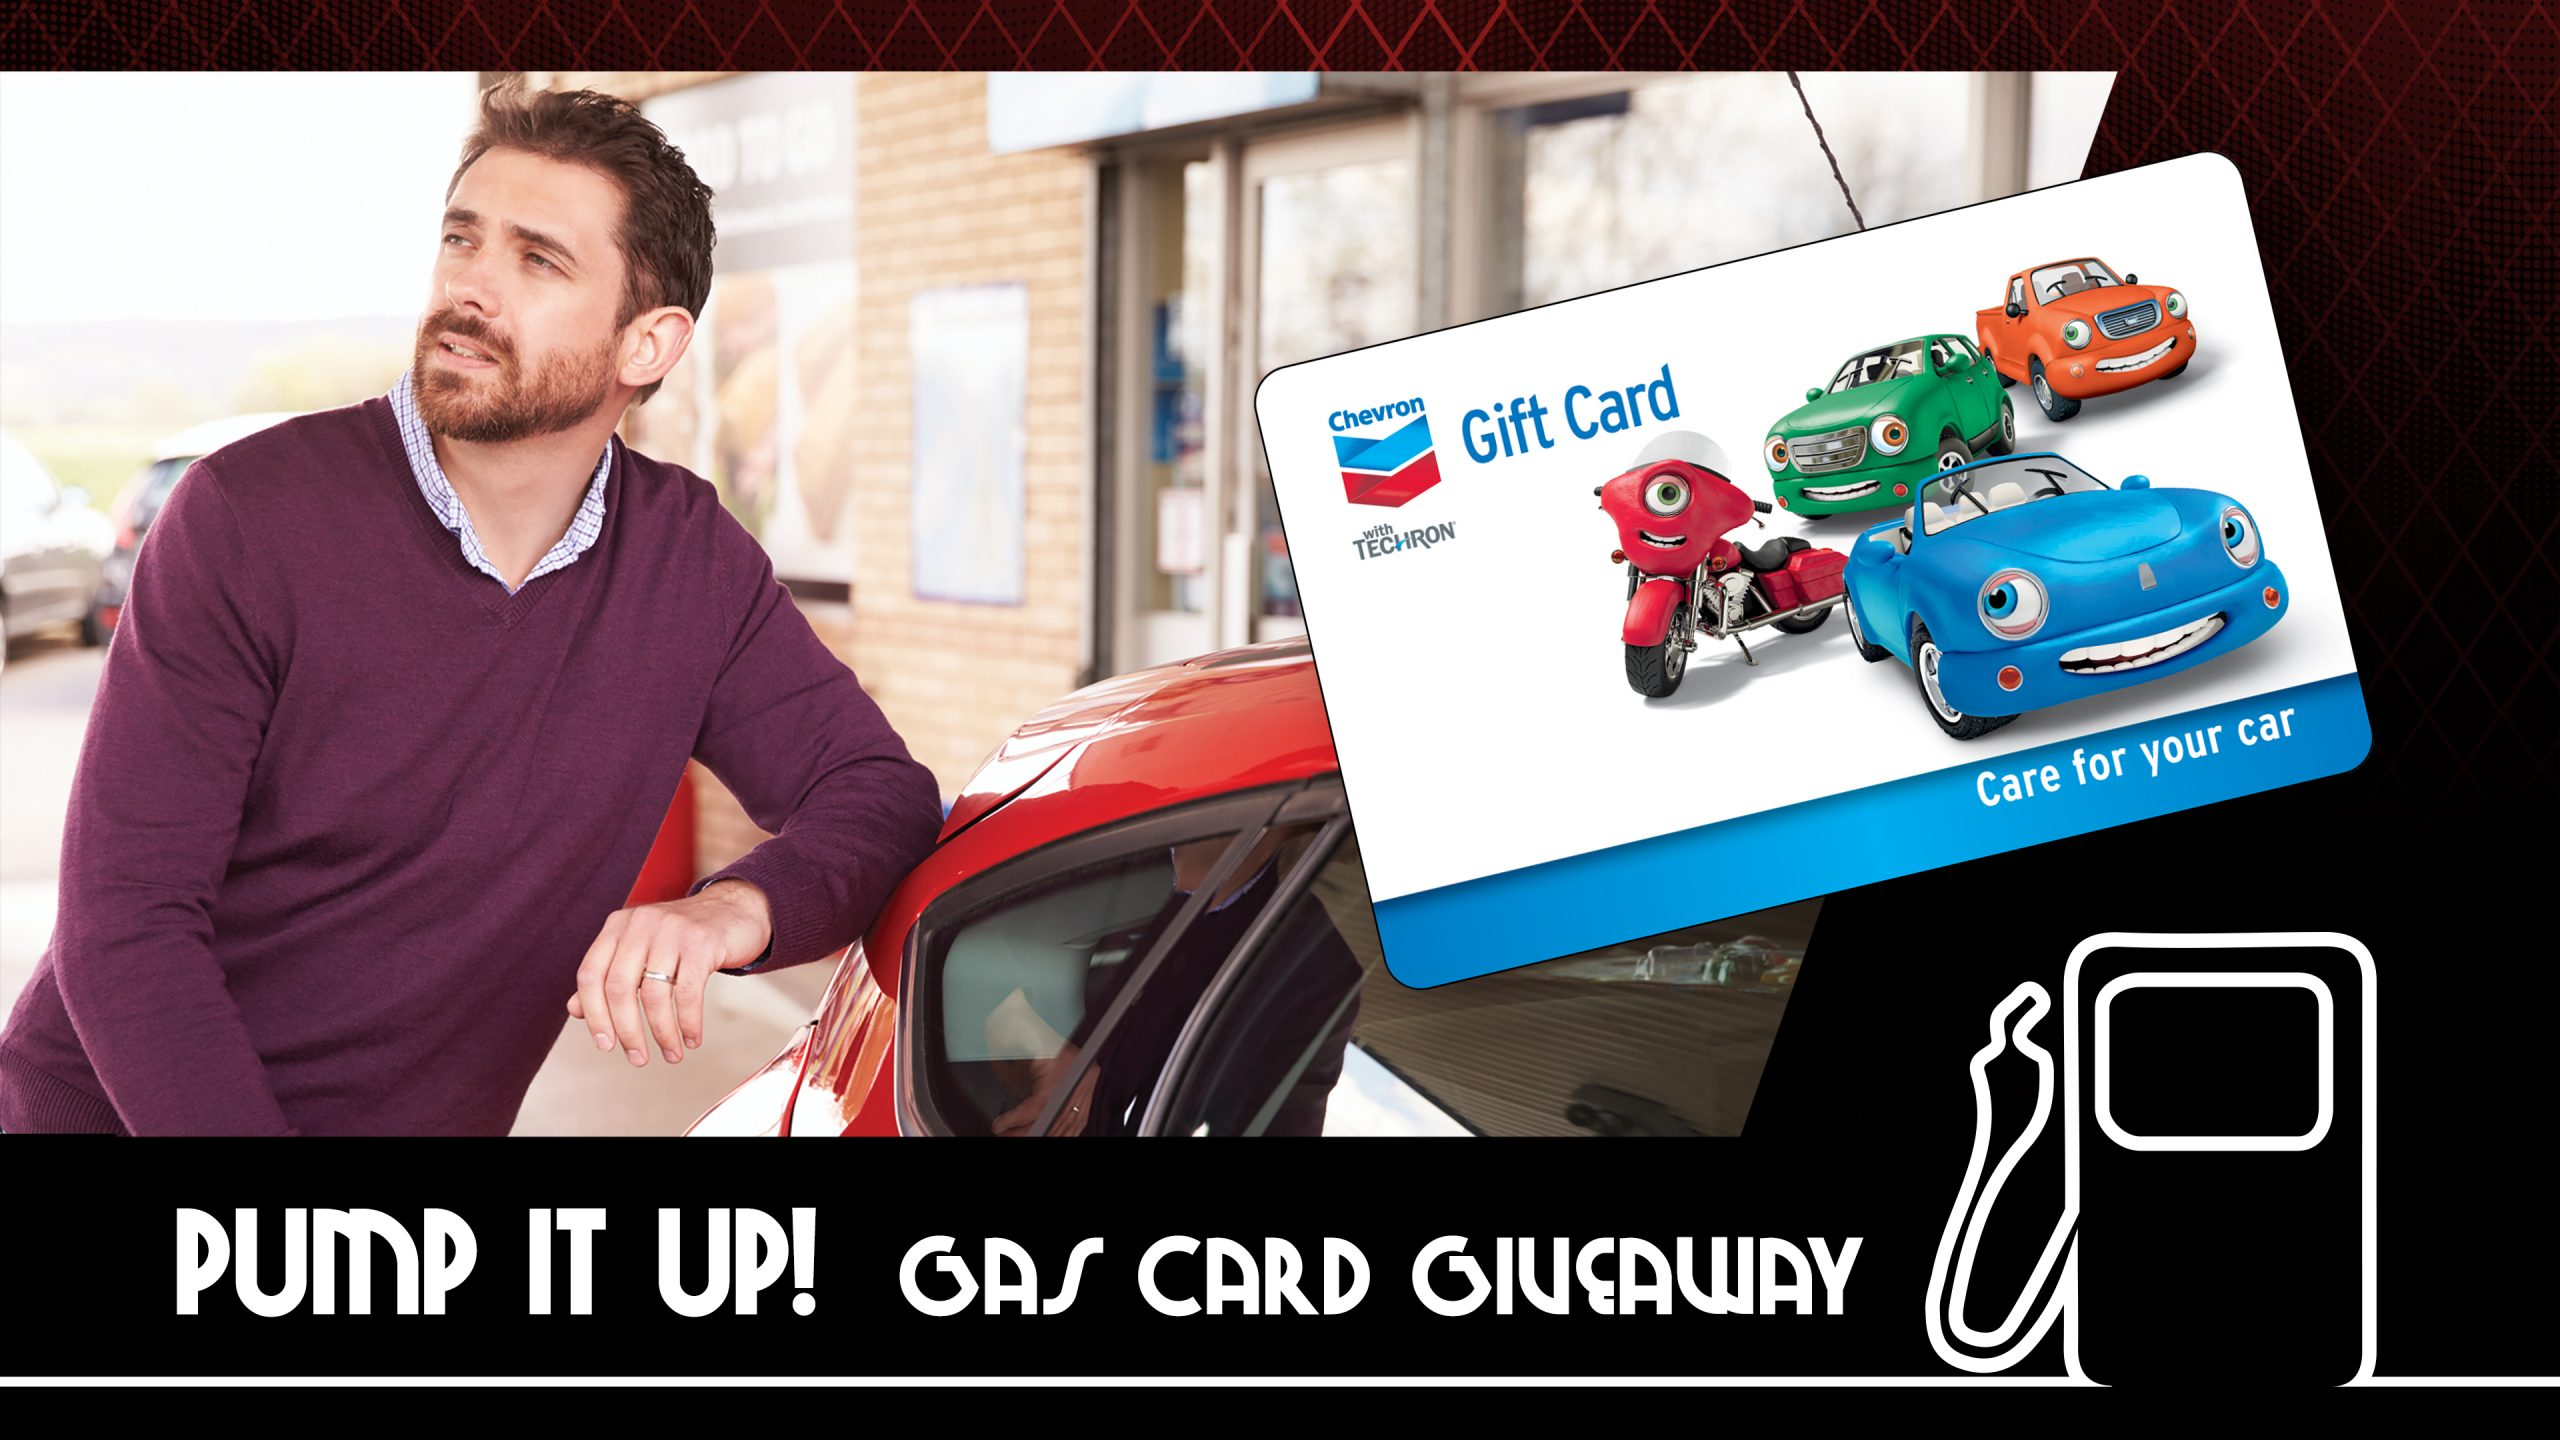 Pump It Up Gas Card Giveaway